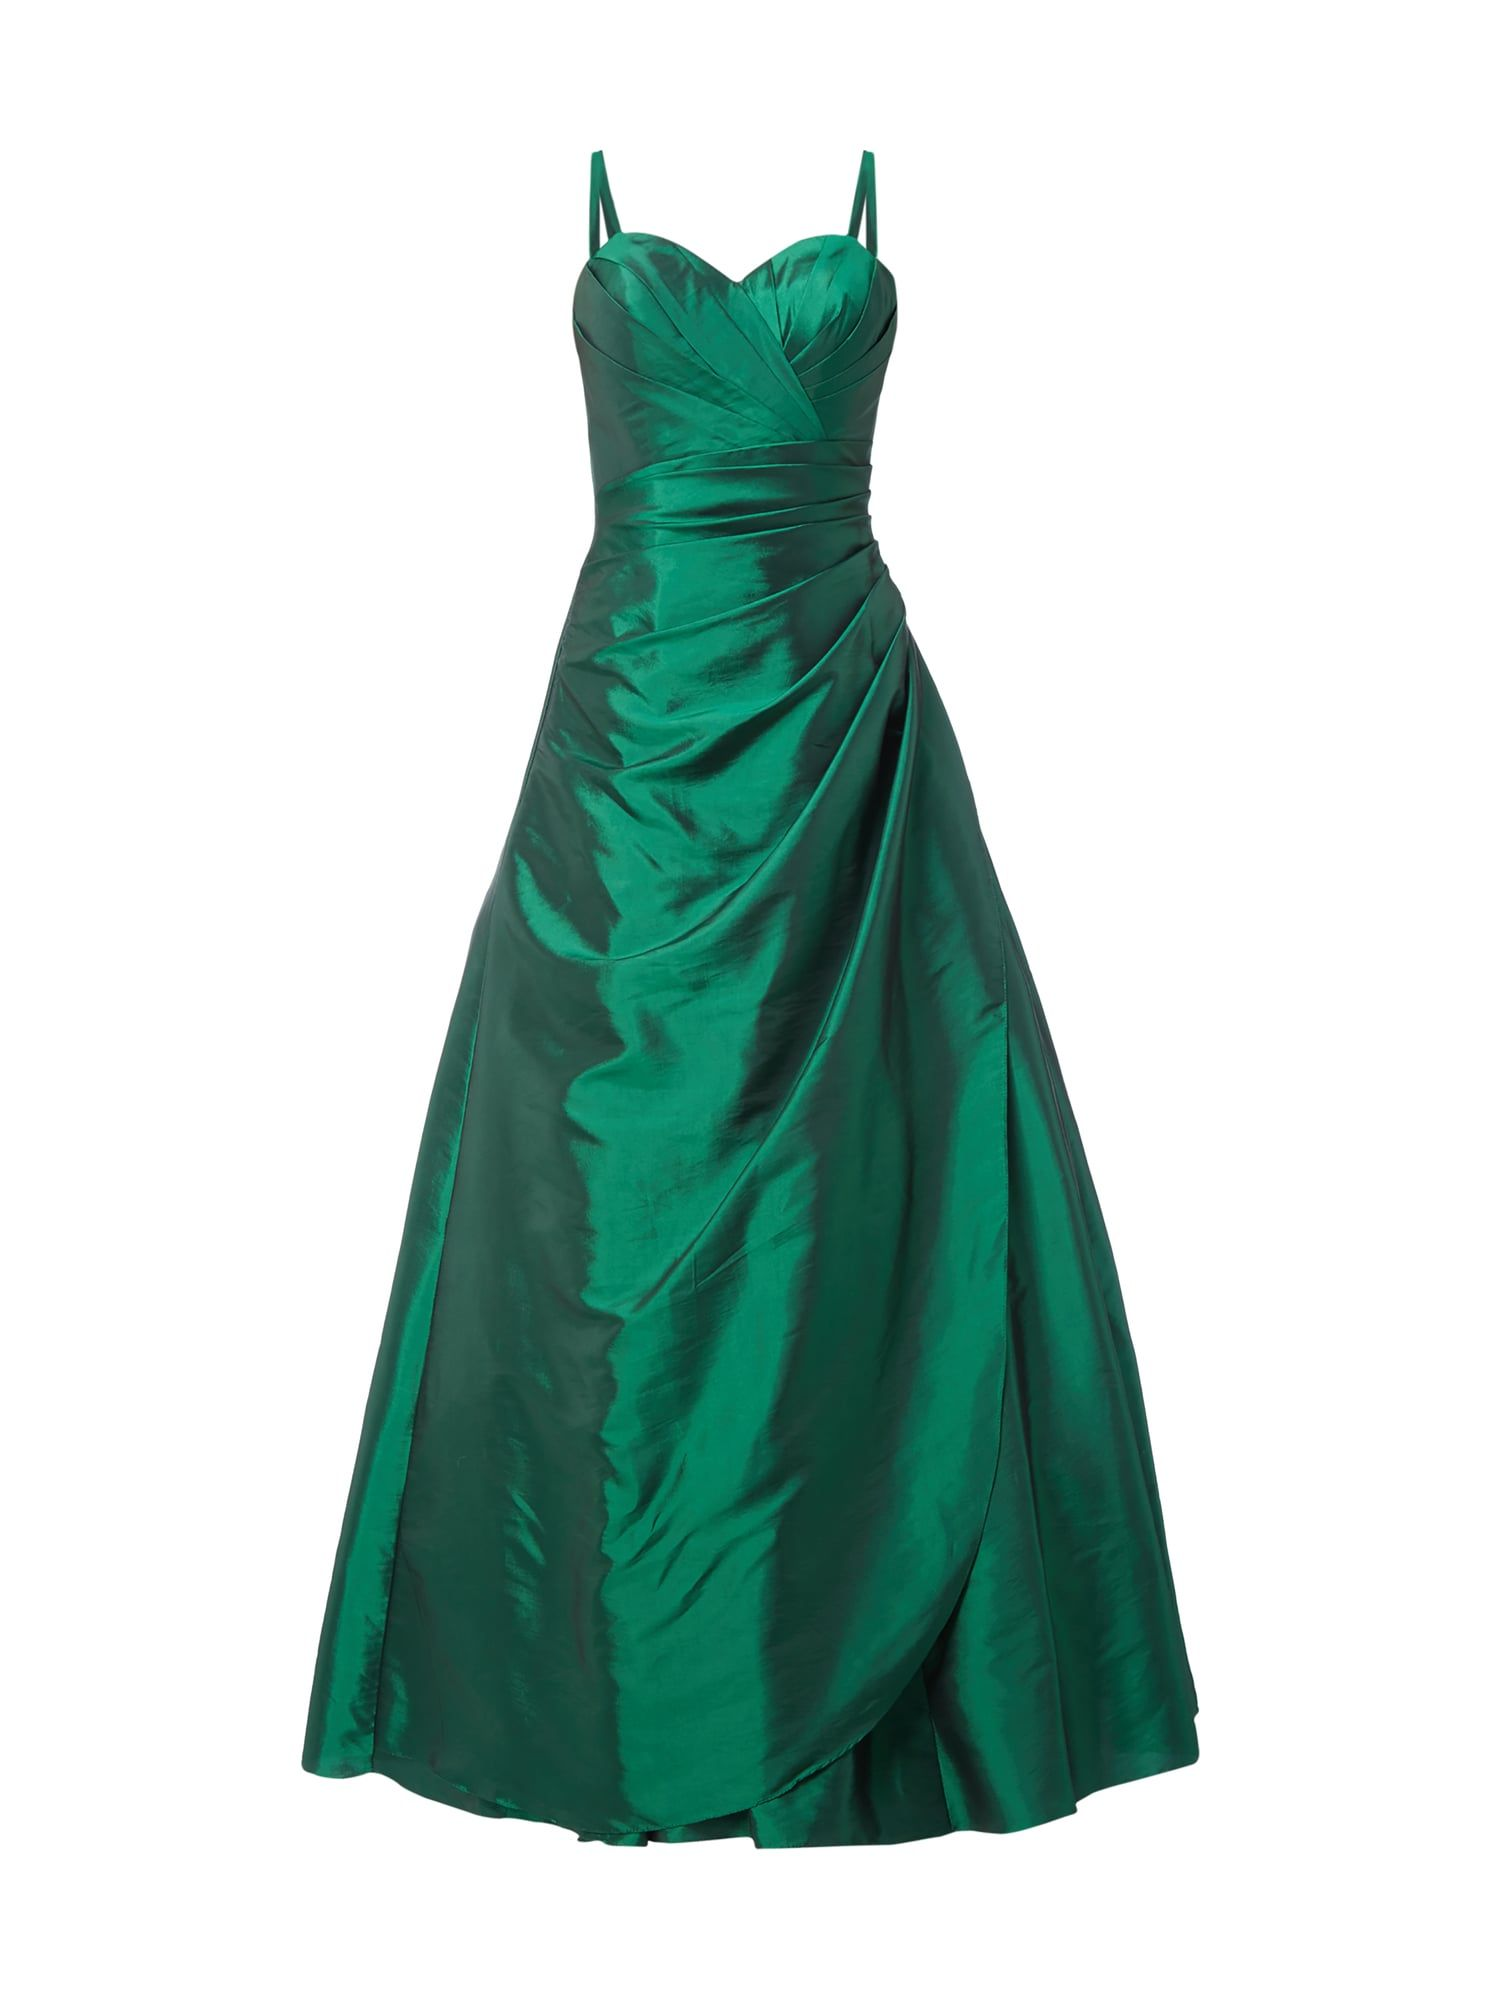 Magic Nights ball gown from Peek & Cloppenburg  Abendkleid